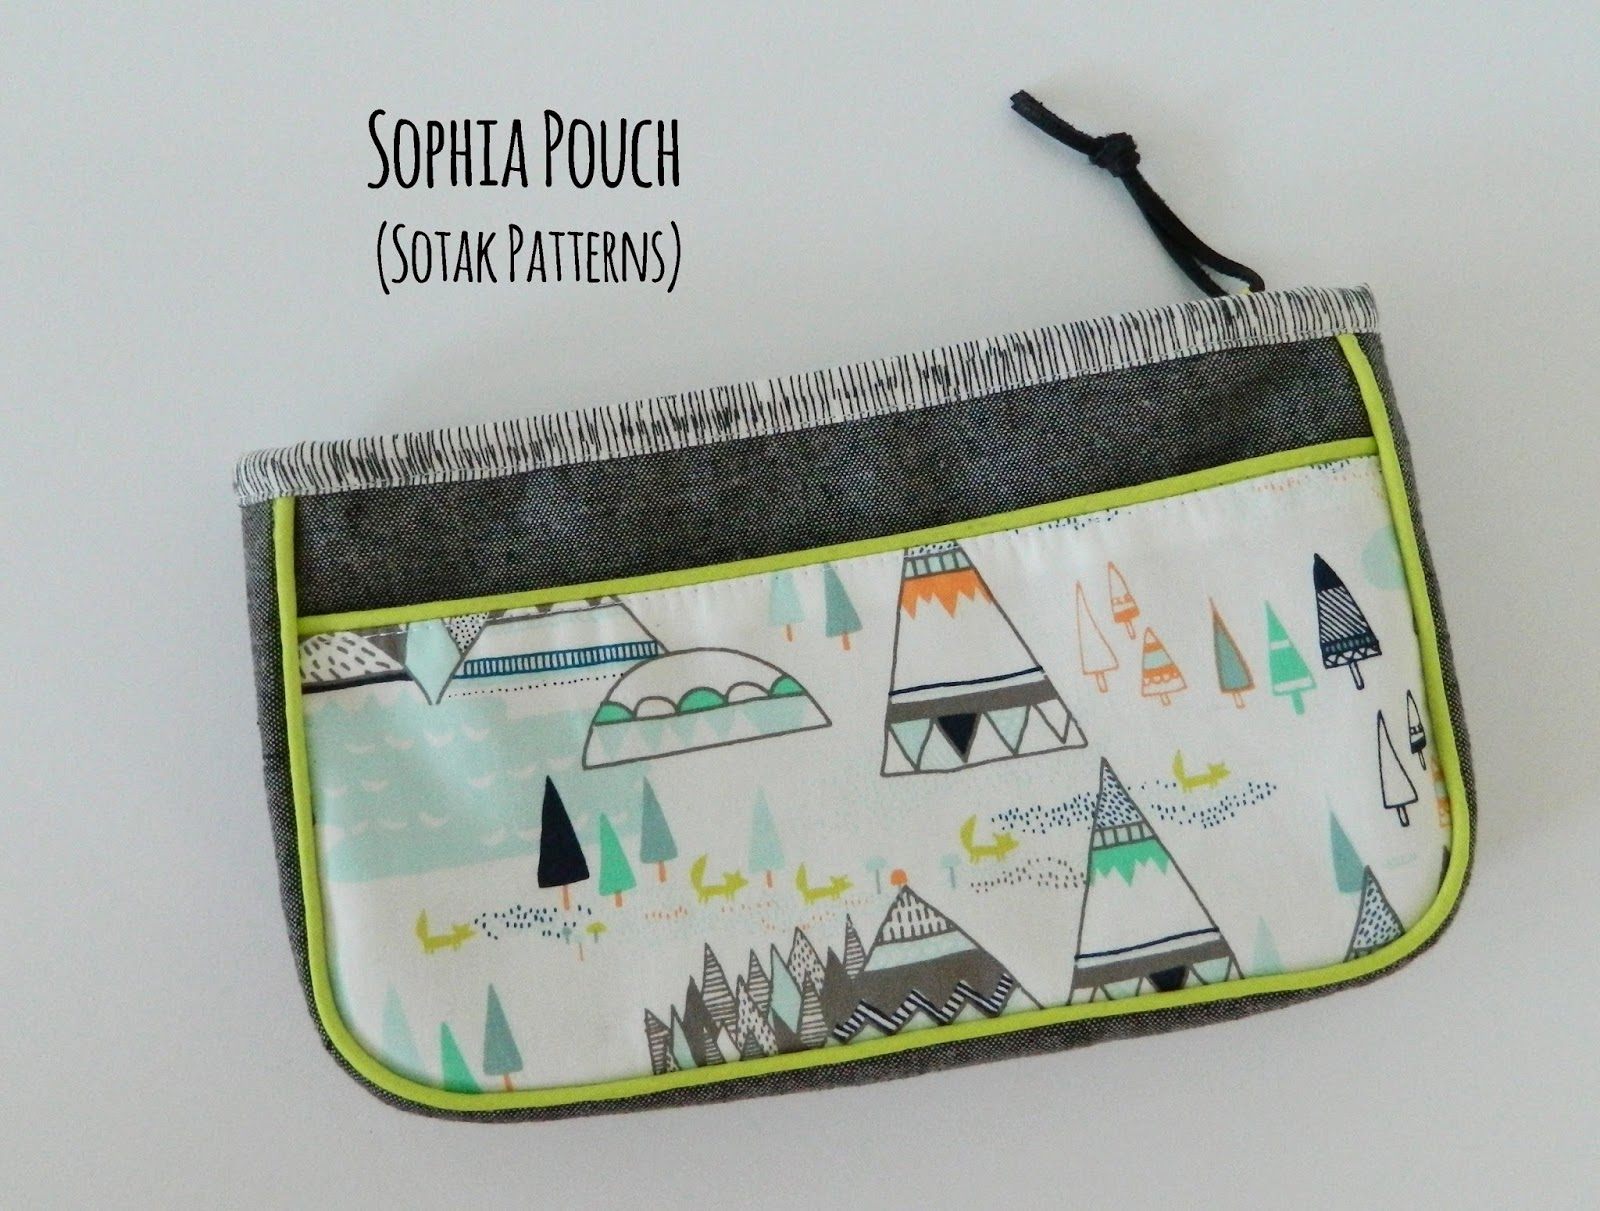 It S Been A While Since I Finished New Pdf Pattern So Feels Especially Good To Show You My Newest Sophia Pouch Must Admit M Kind Of In Love With